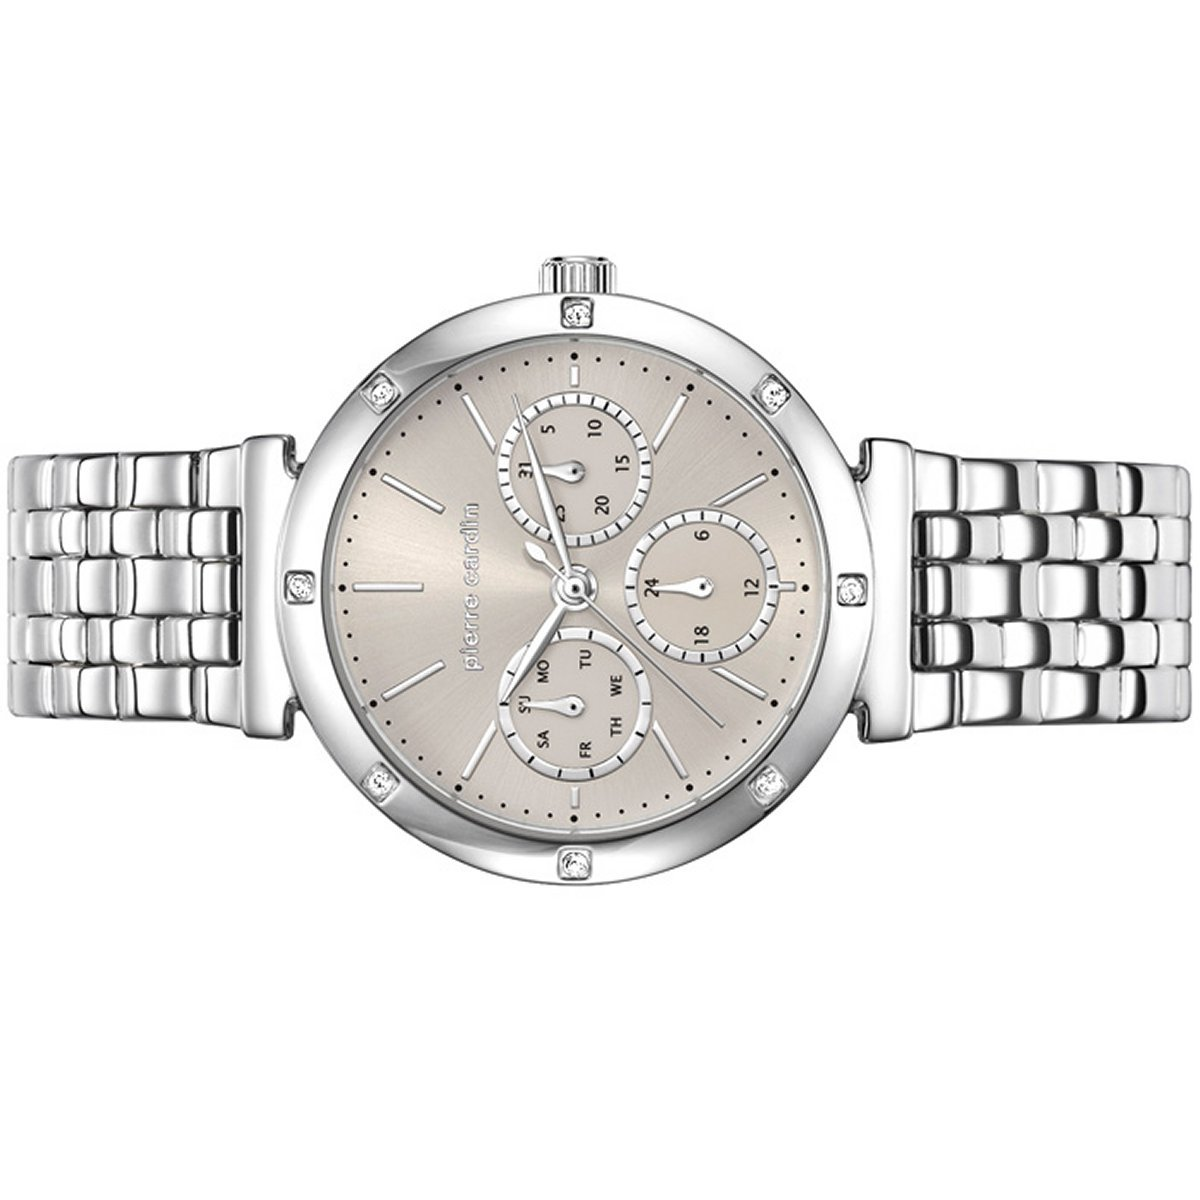 Pierre Carin Montreuil Femme Steel Women s watch PC107882 °F04   Amazon.co.uk  Watches 7836ae7829